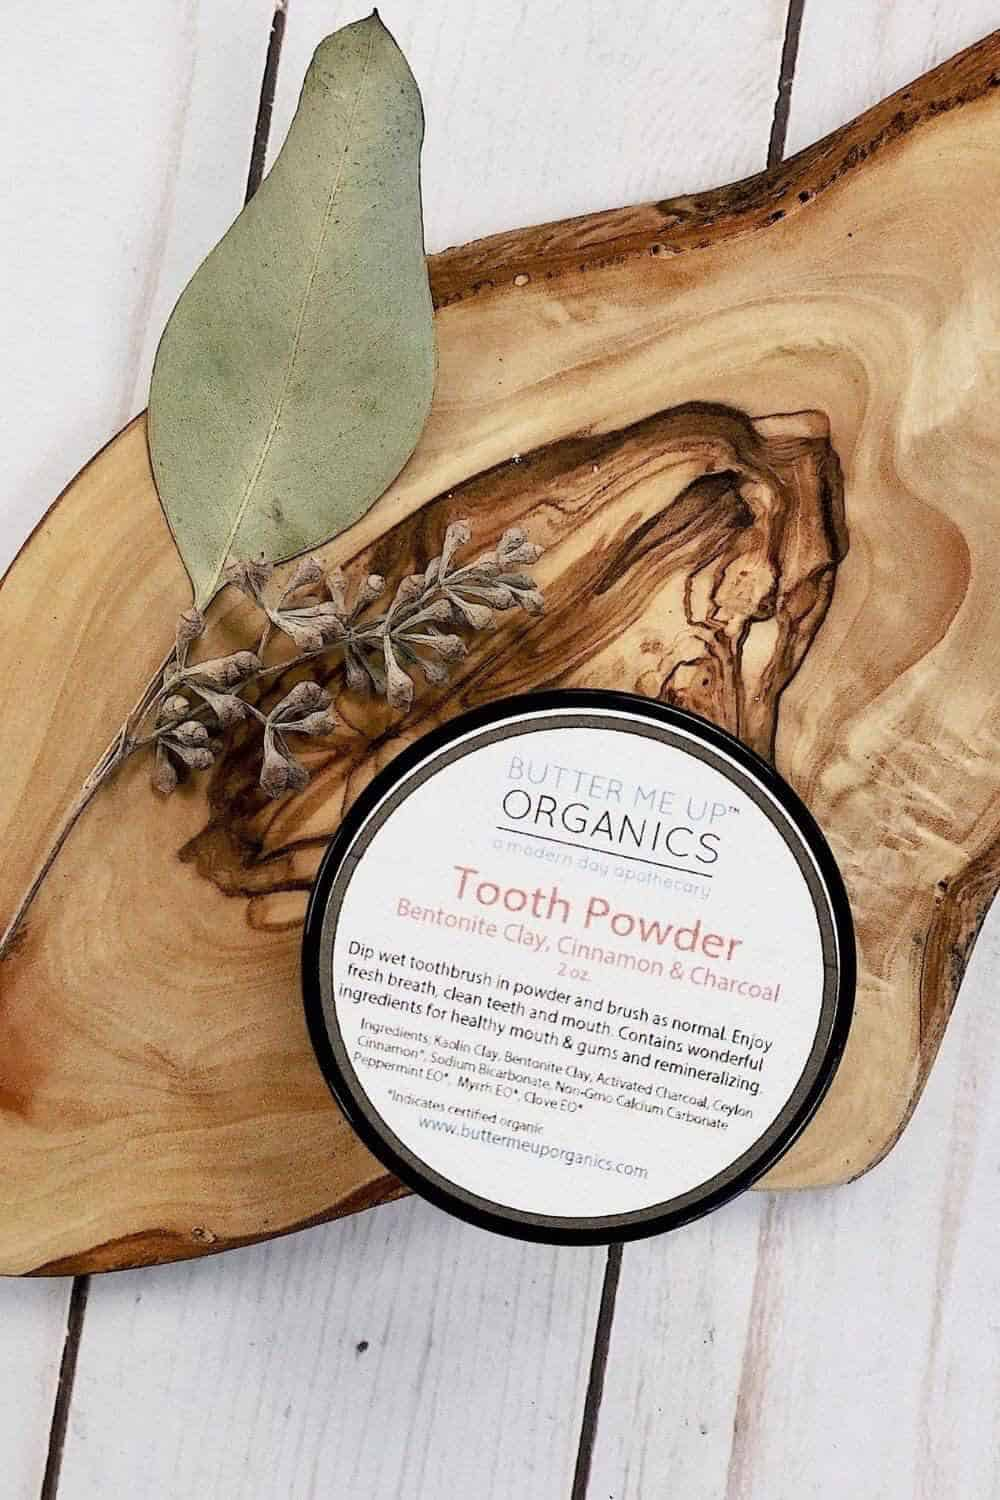 The whole idea of zero waste makes us smile, so we thought we'd take a moment to talk zero waste toothpaste Image by Butter Me Up Organics #zerowastetoothpaste #sustainablejungle